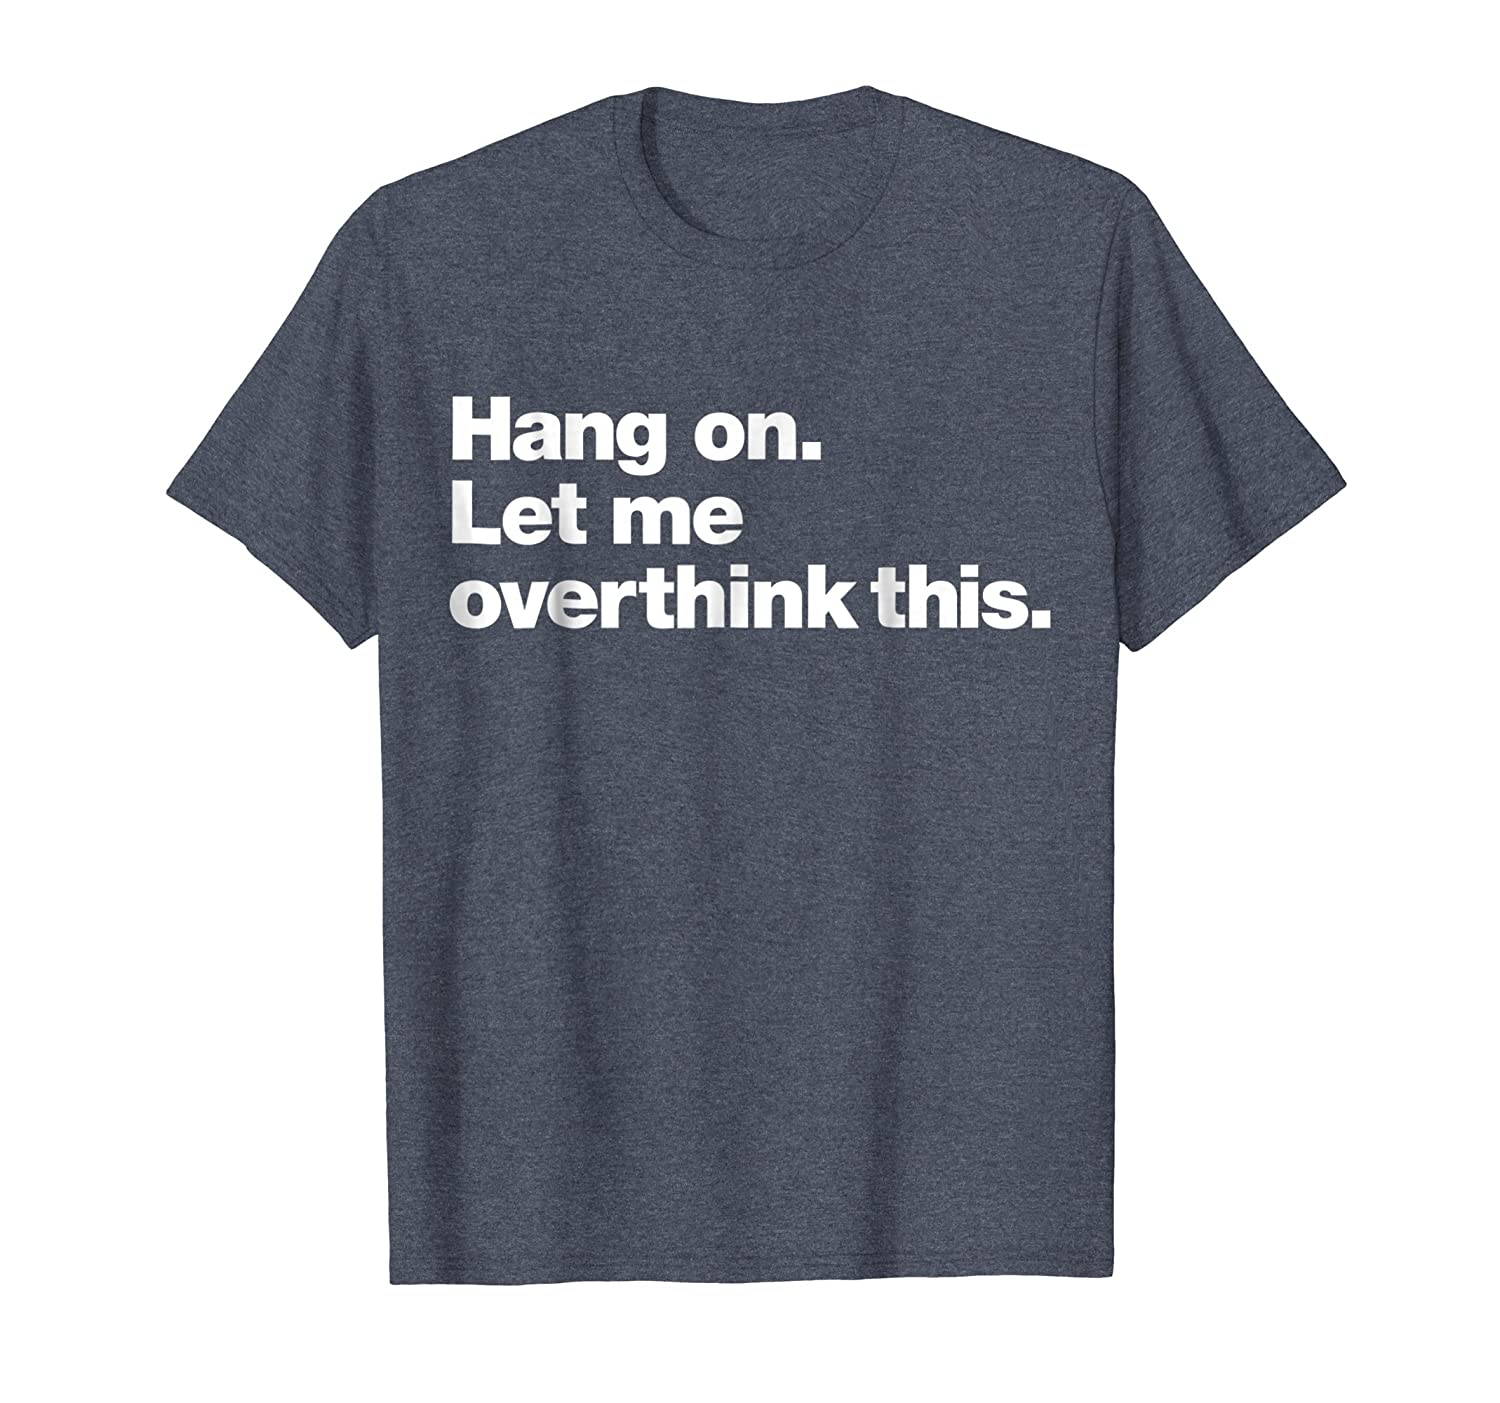 Hang On. Let me overthink this. | Funny Overthink T-Shirt-fa